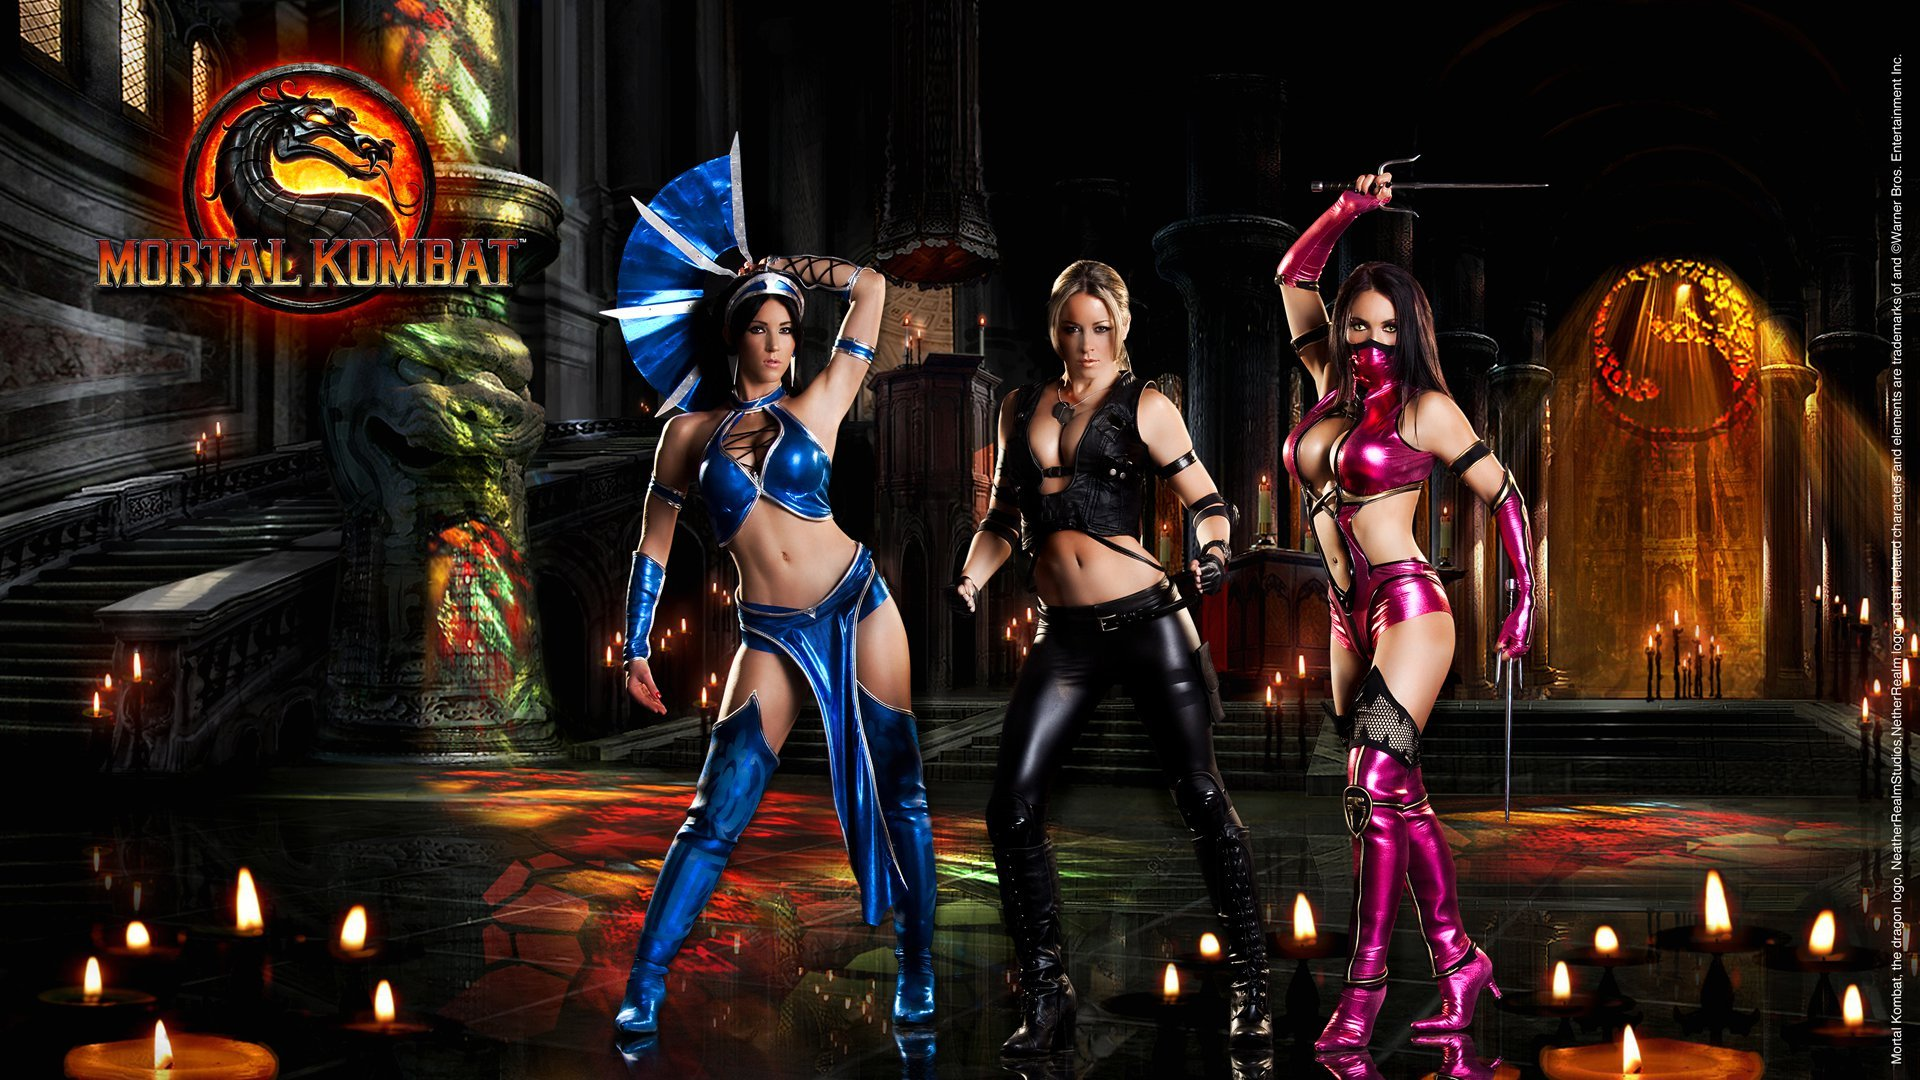 Mortal Kombat Wallpaper Sonya Blade And Kitana Mileena